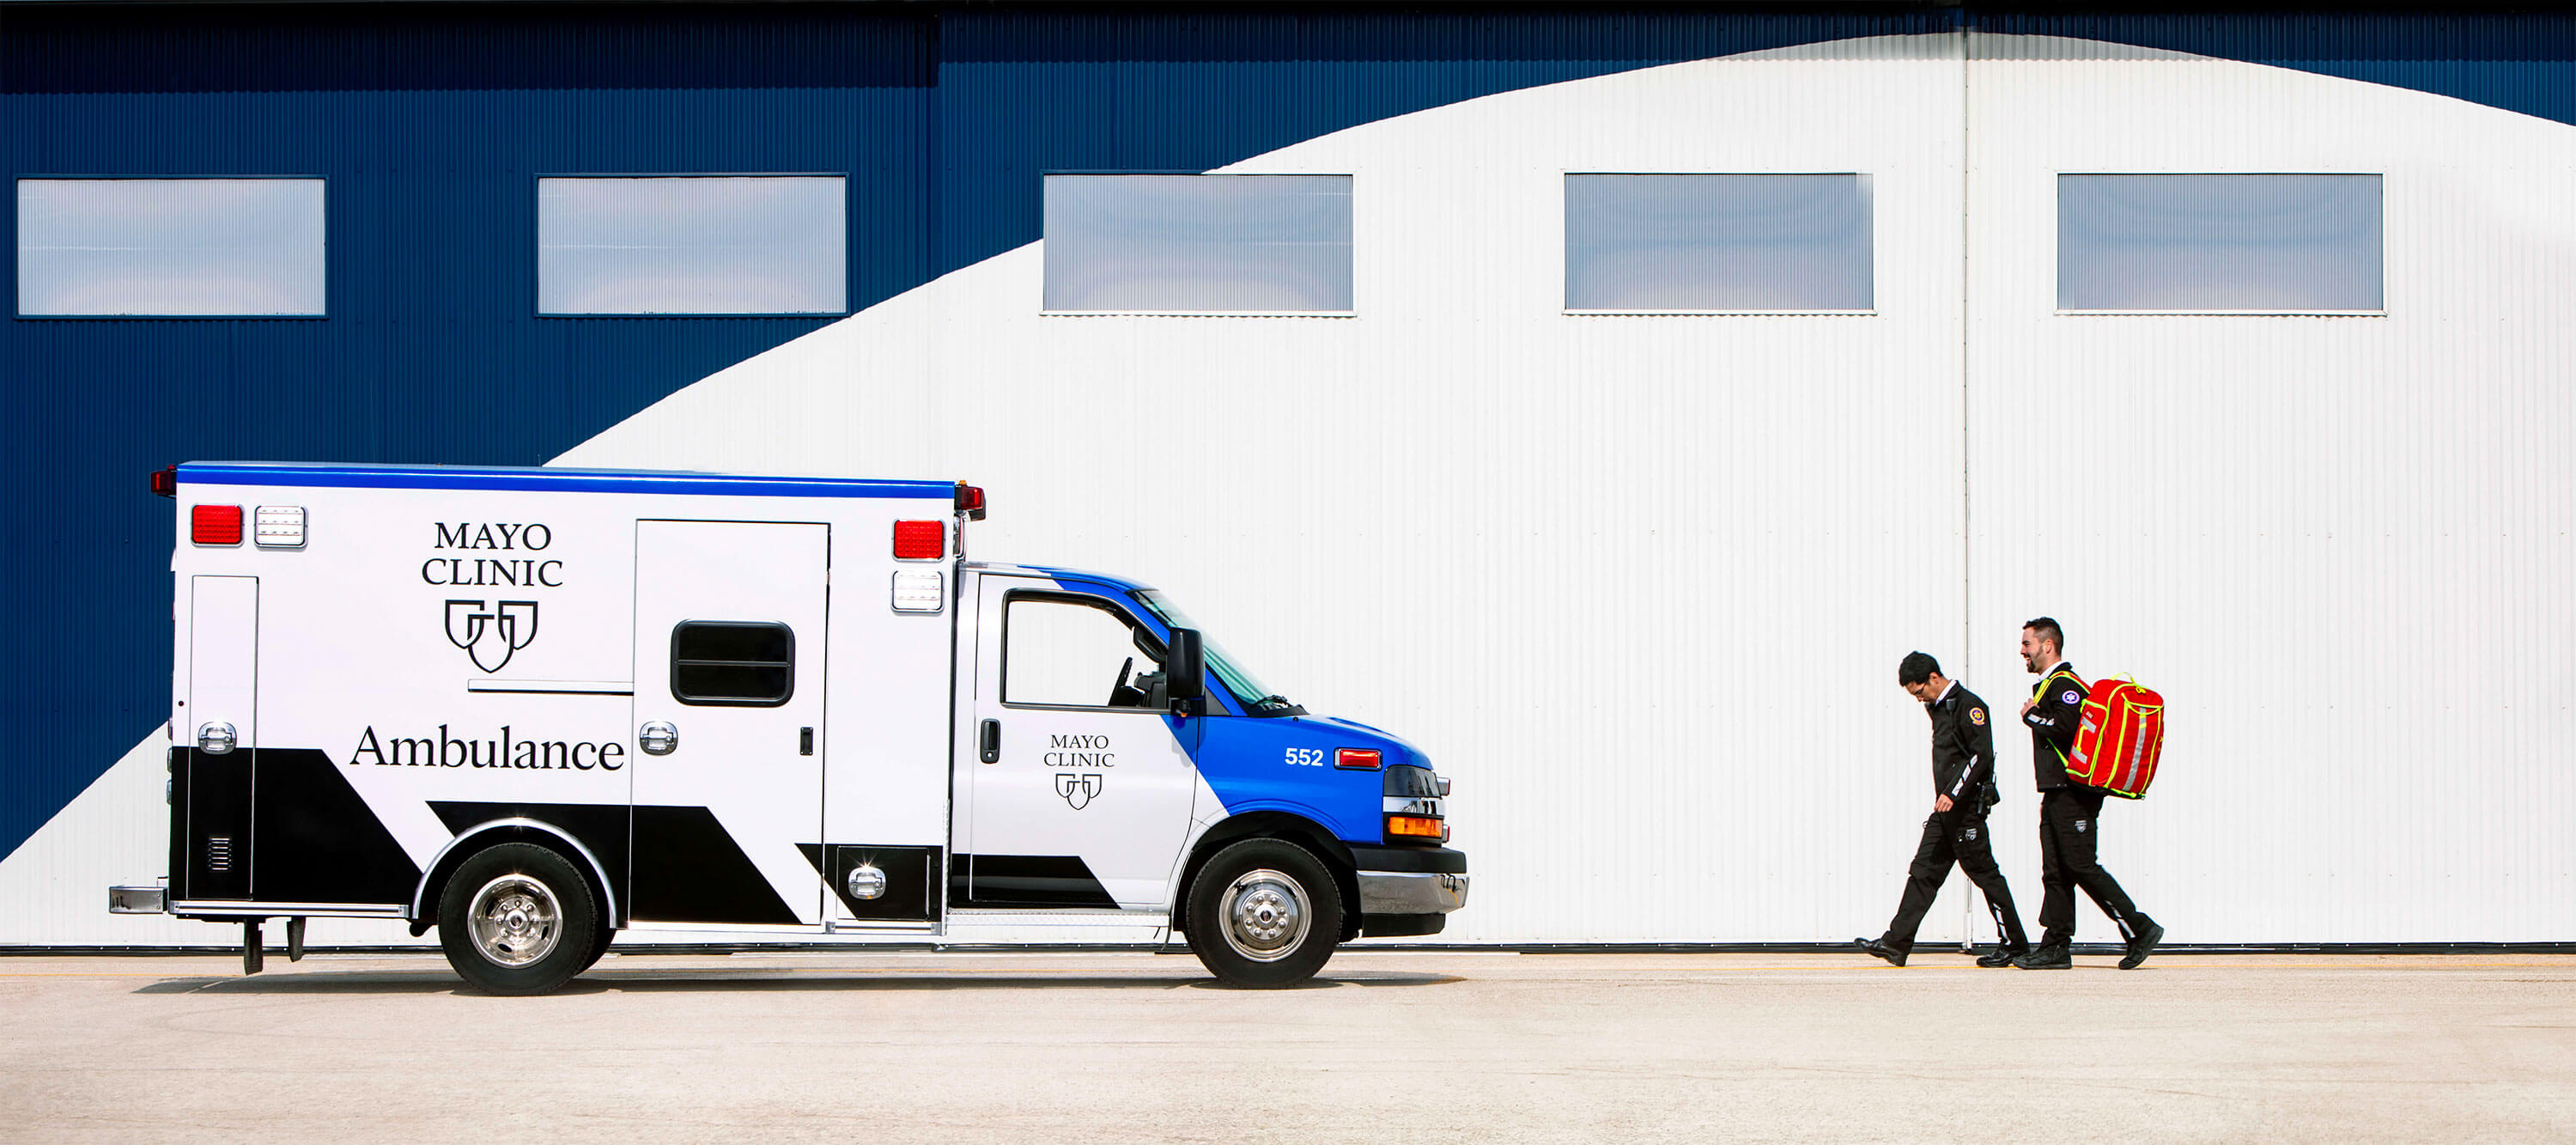 Photo of Mayo Clinic Ambulance